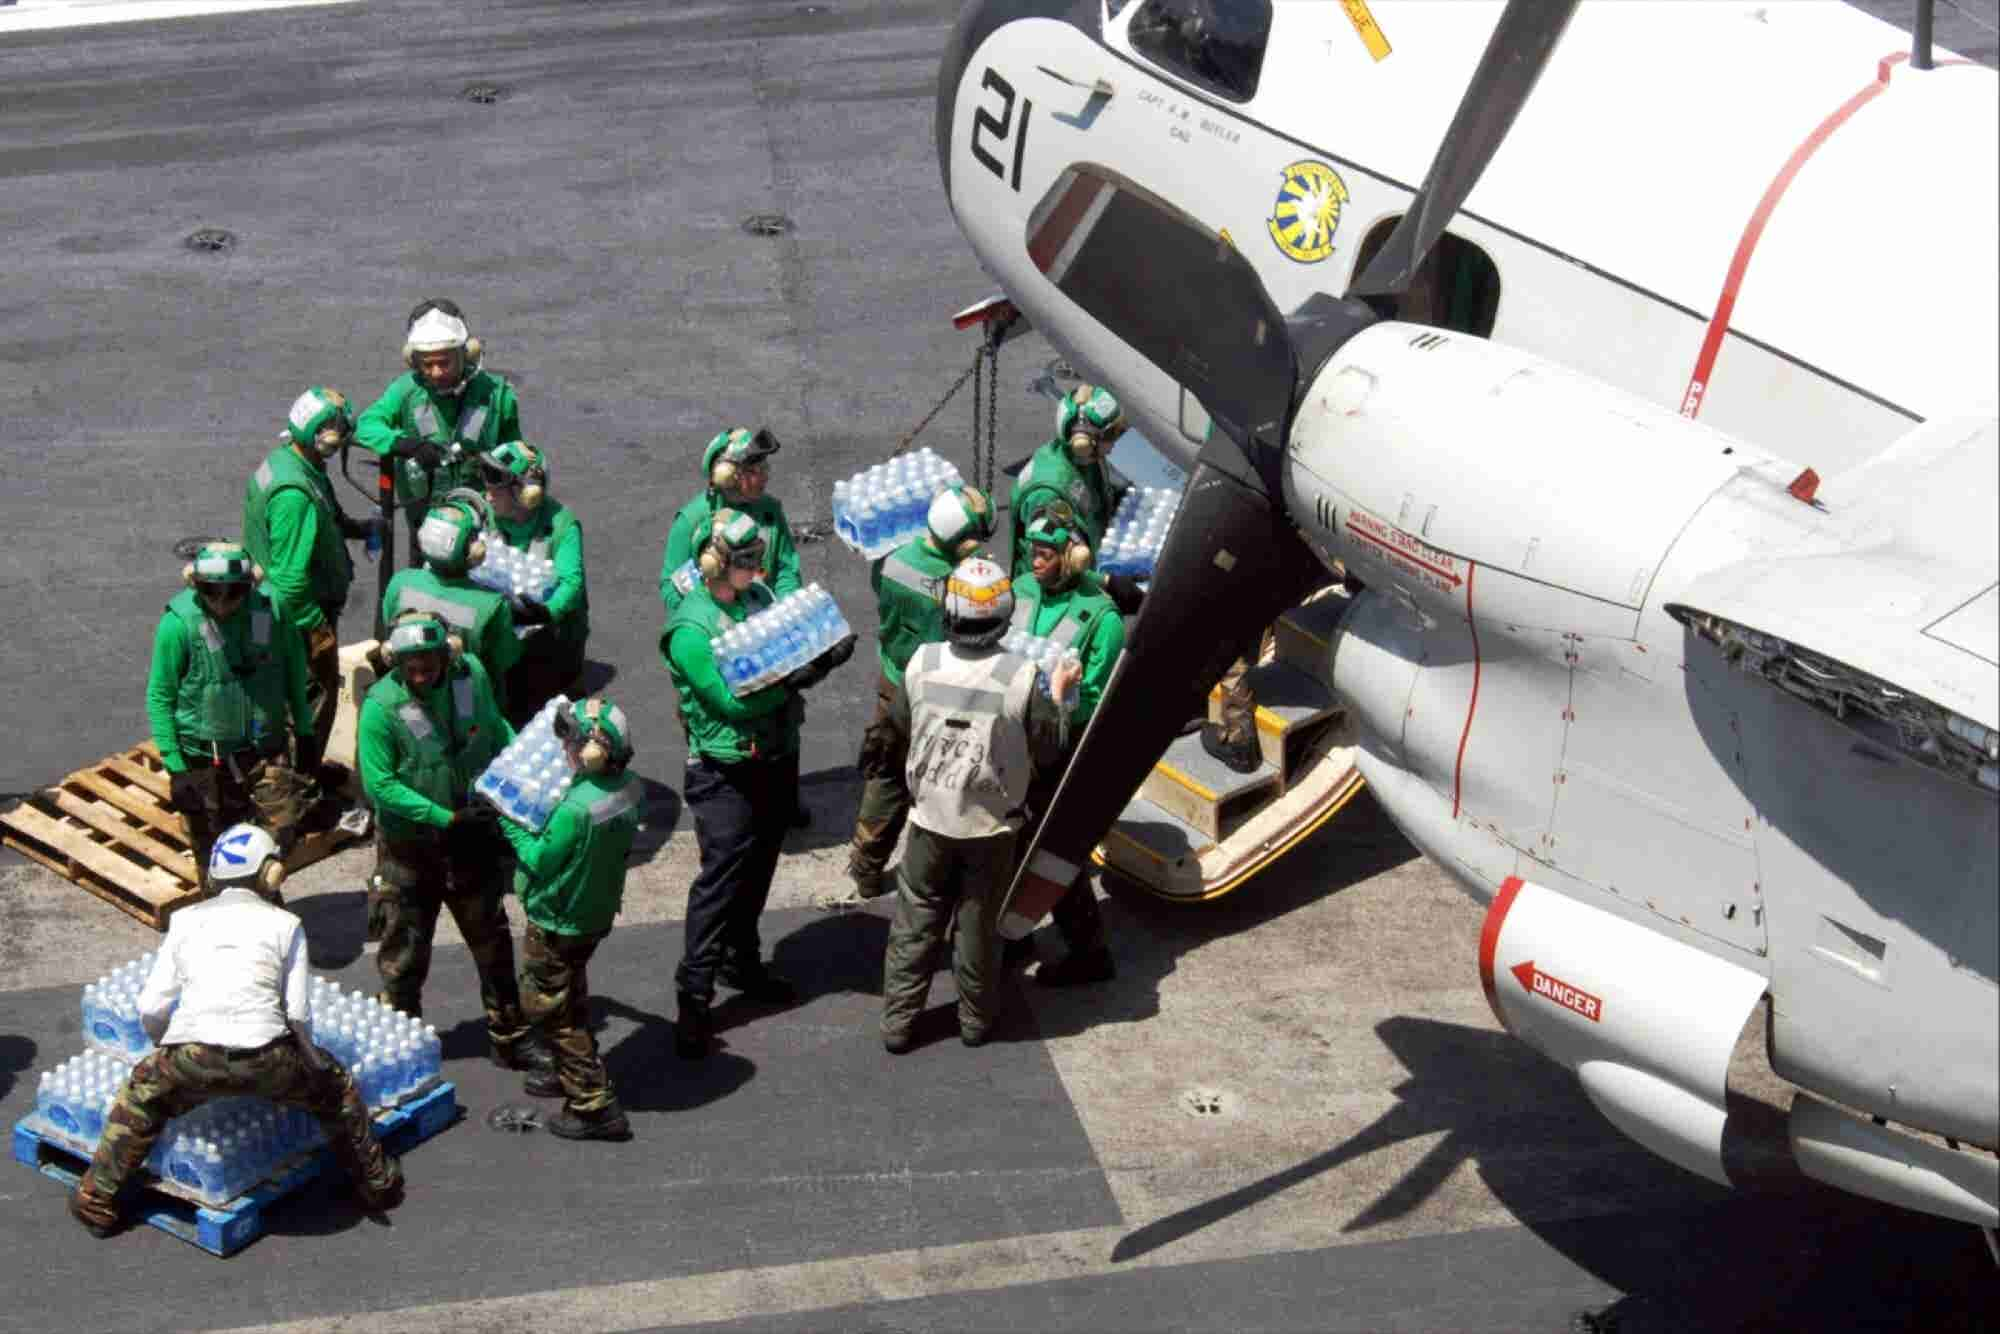 Scopes And Opportunities in Humanitarian Logistics